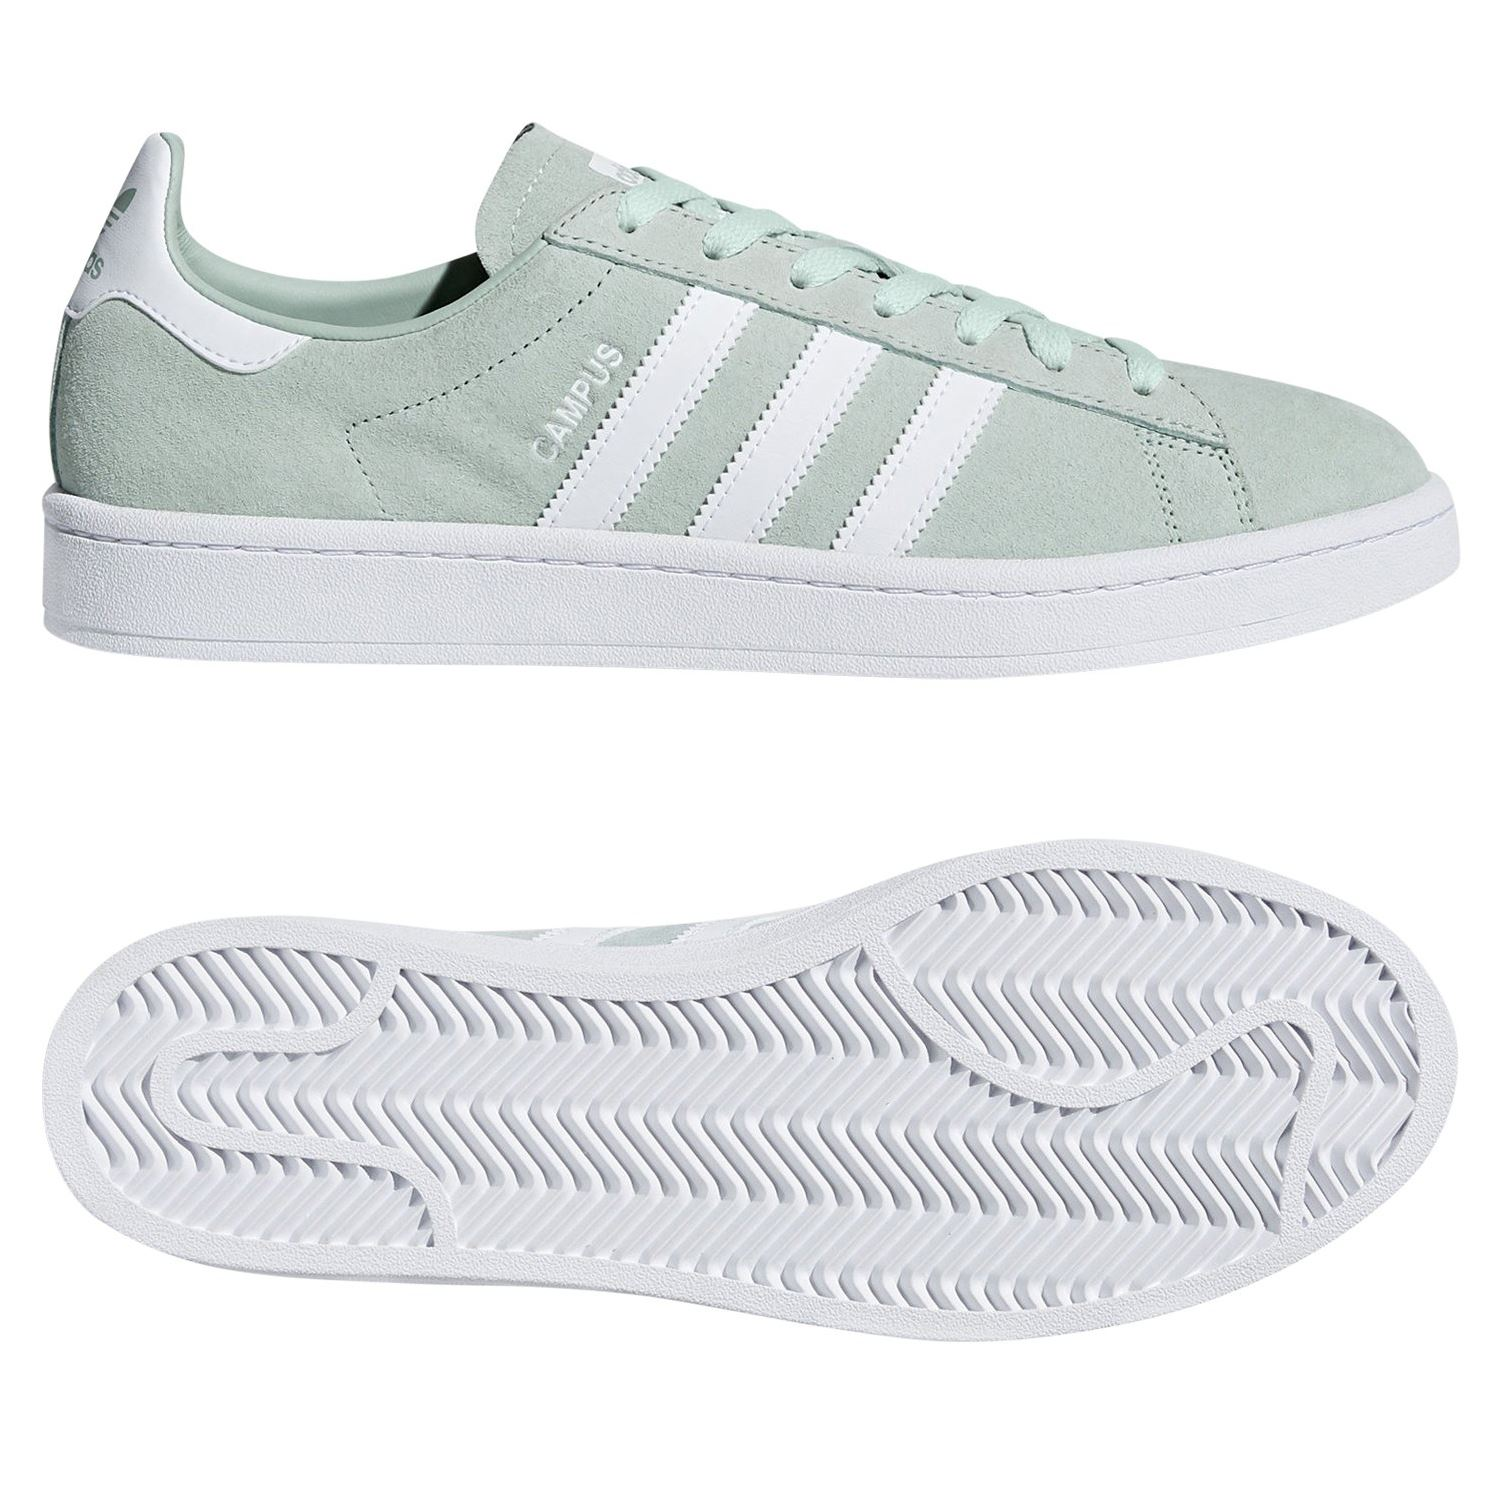 more photos bafce ddcbc CAMPUS formatori verde SNEAKERS Scarpe retrò SMART TREFOIL ADIDAS ORIGINALS  uomo